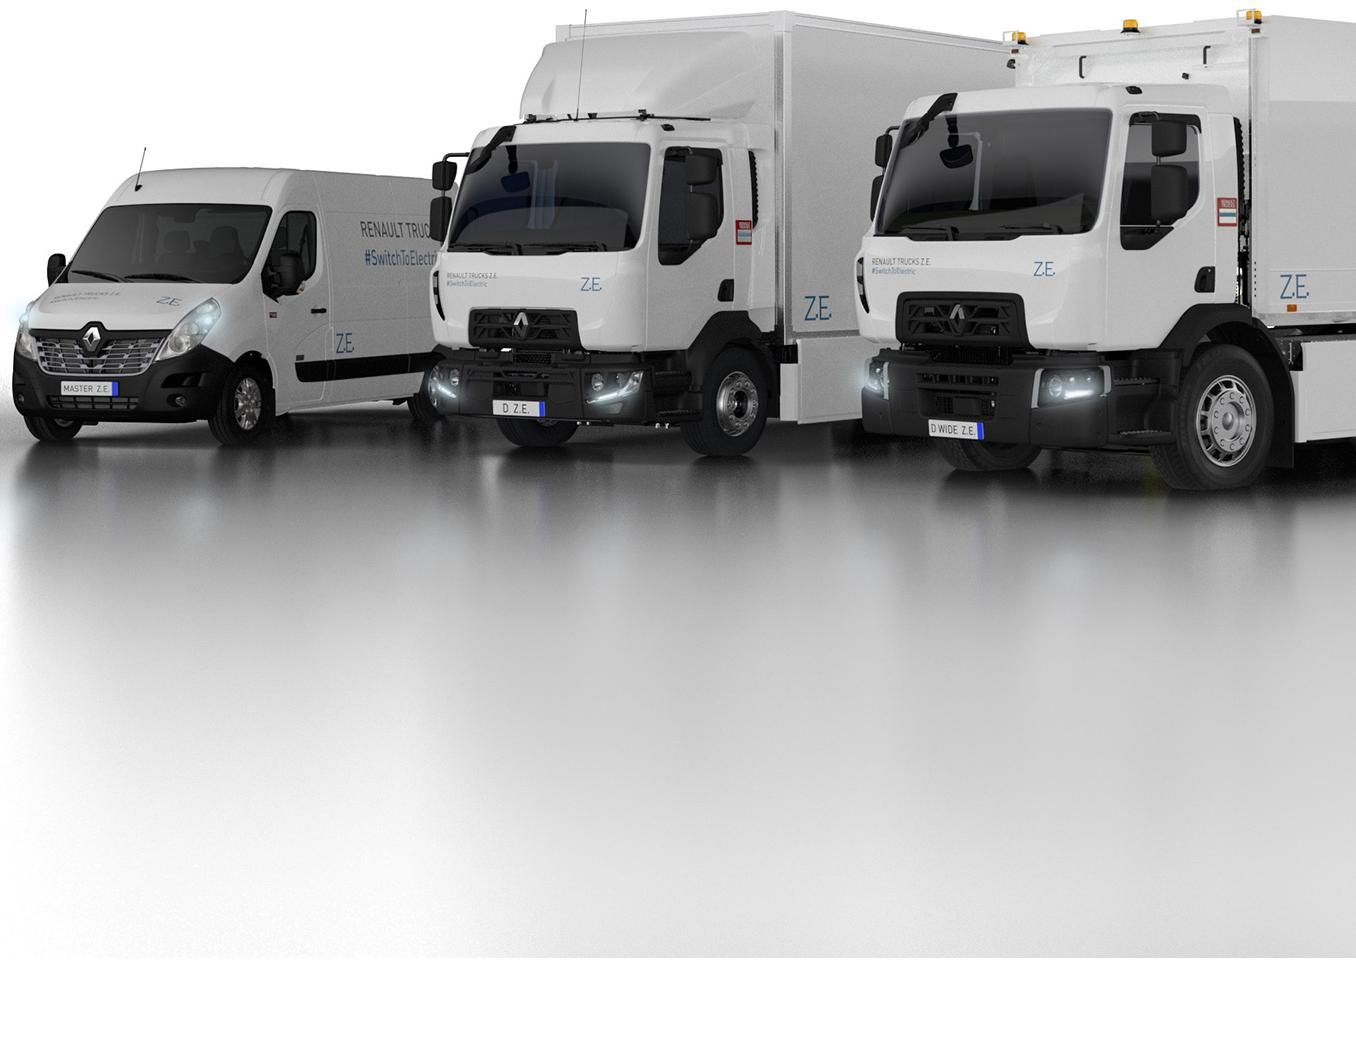 renault-trucks-ze-range-electric trucks